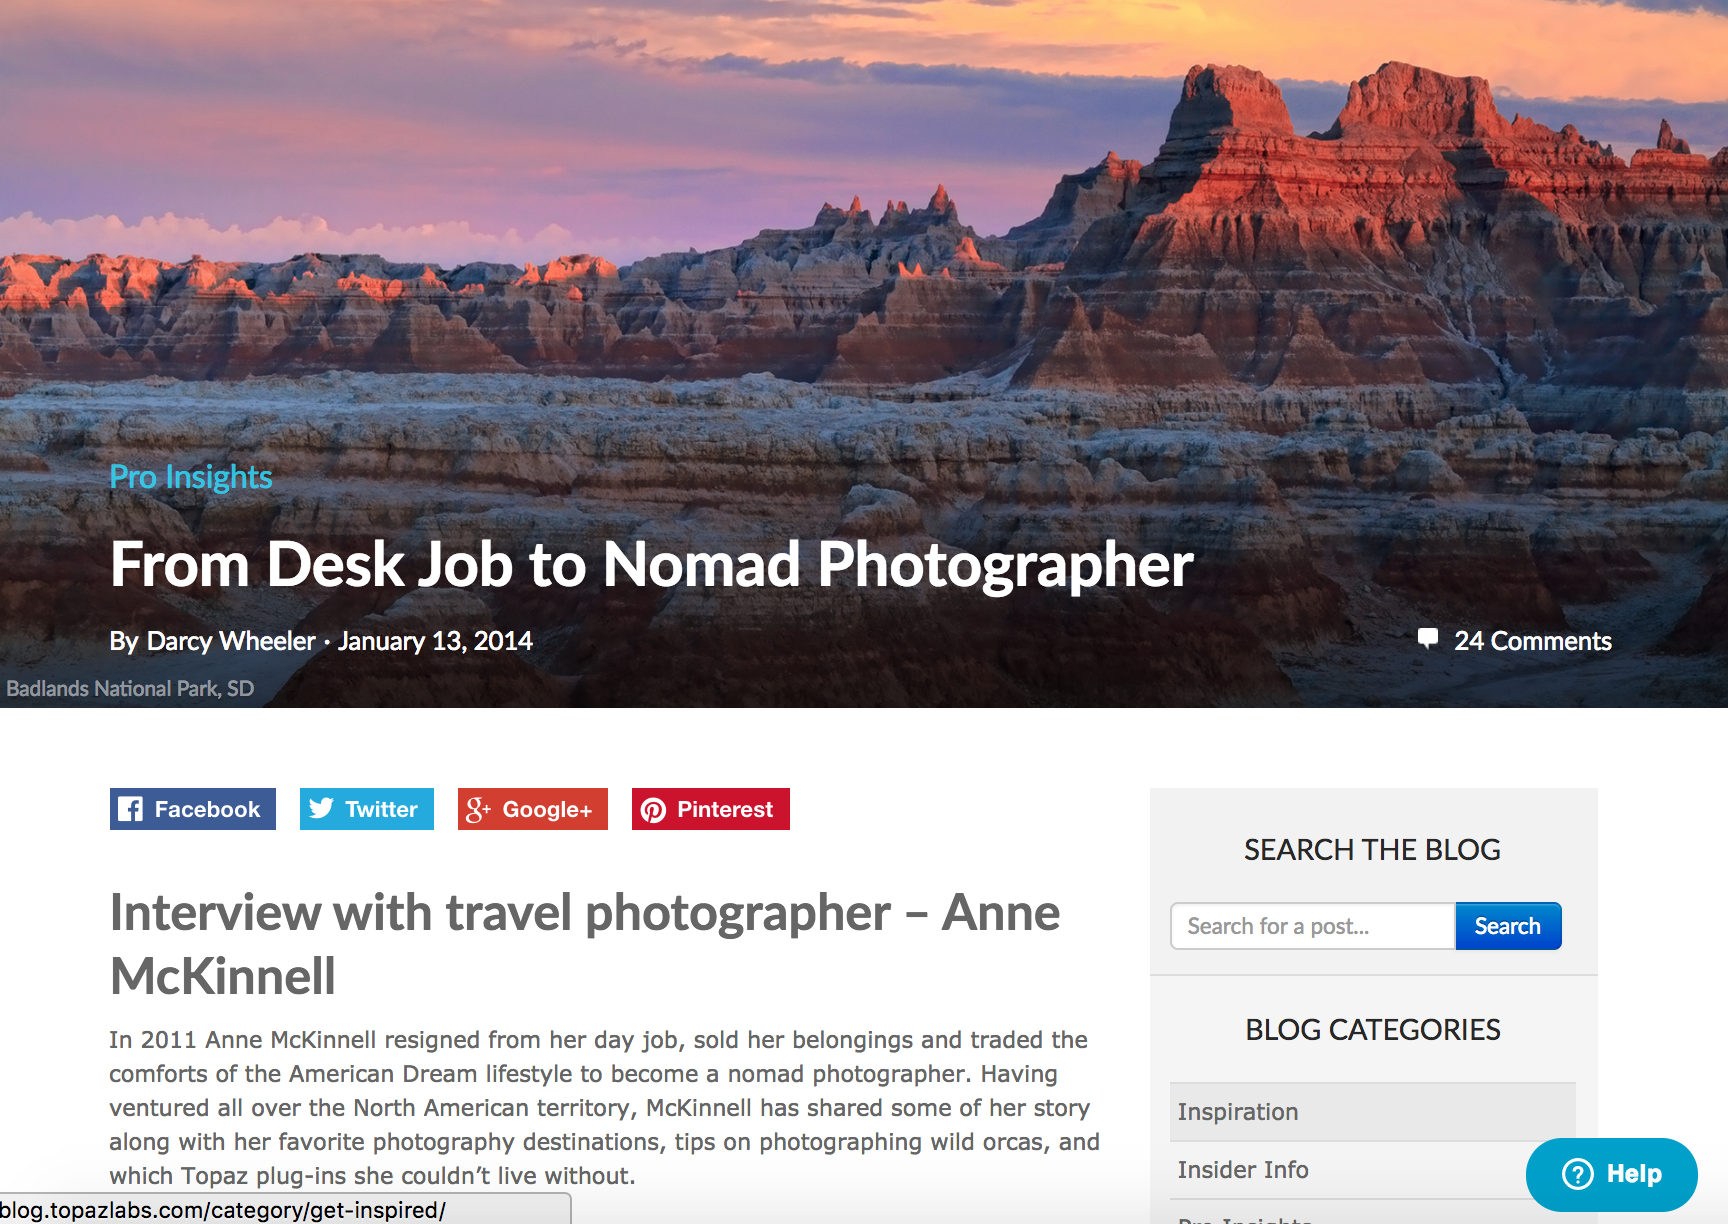 Interview with travel photographer Anne McKinnell